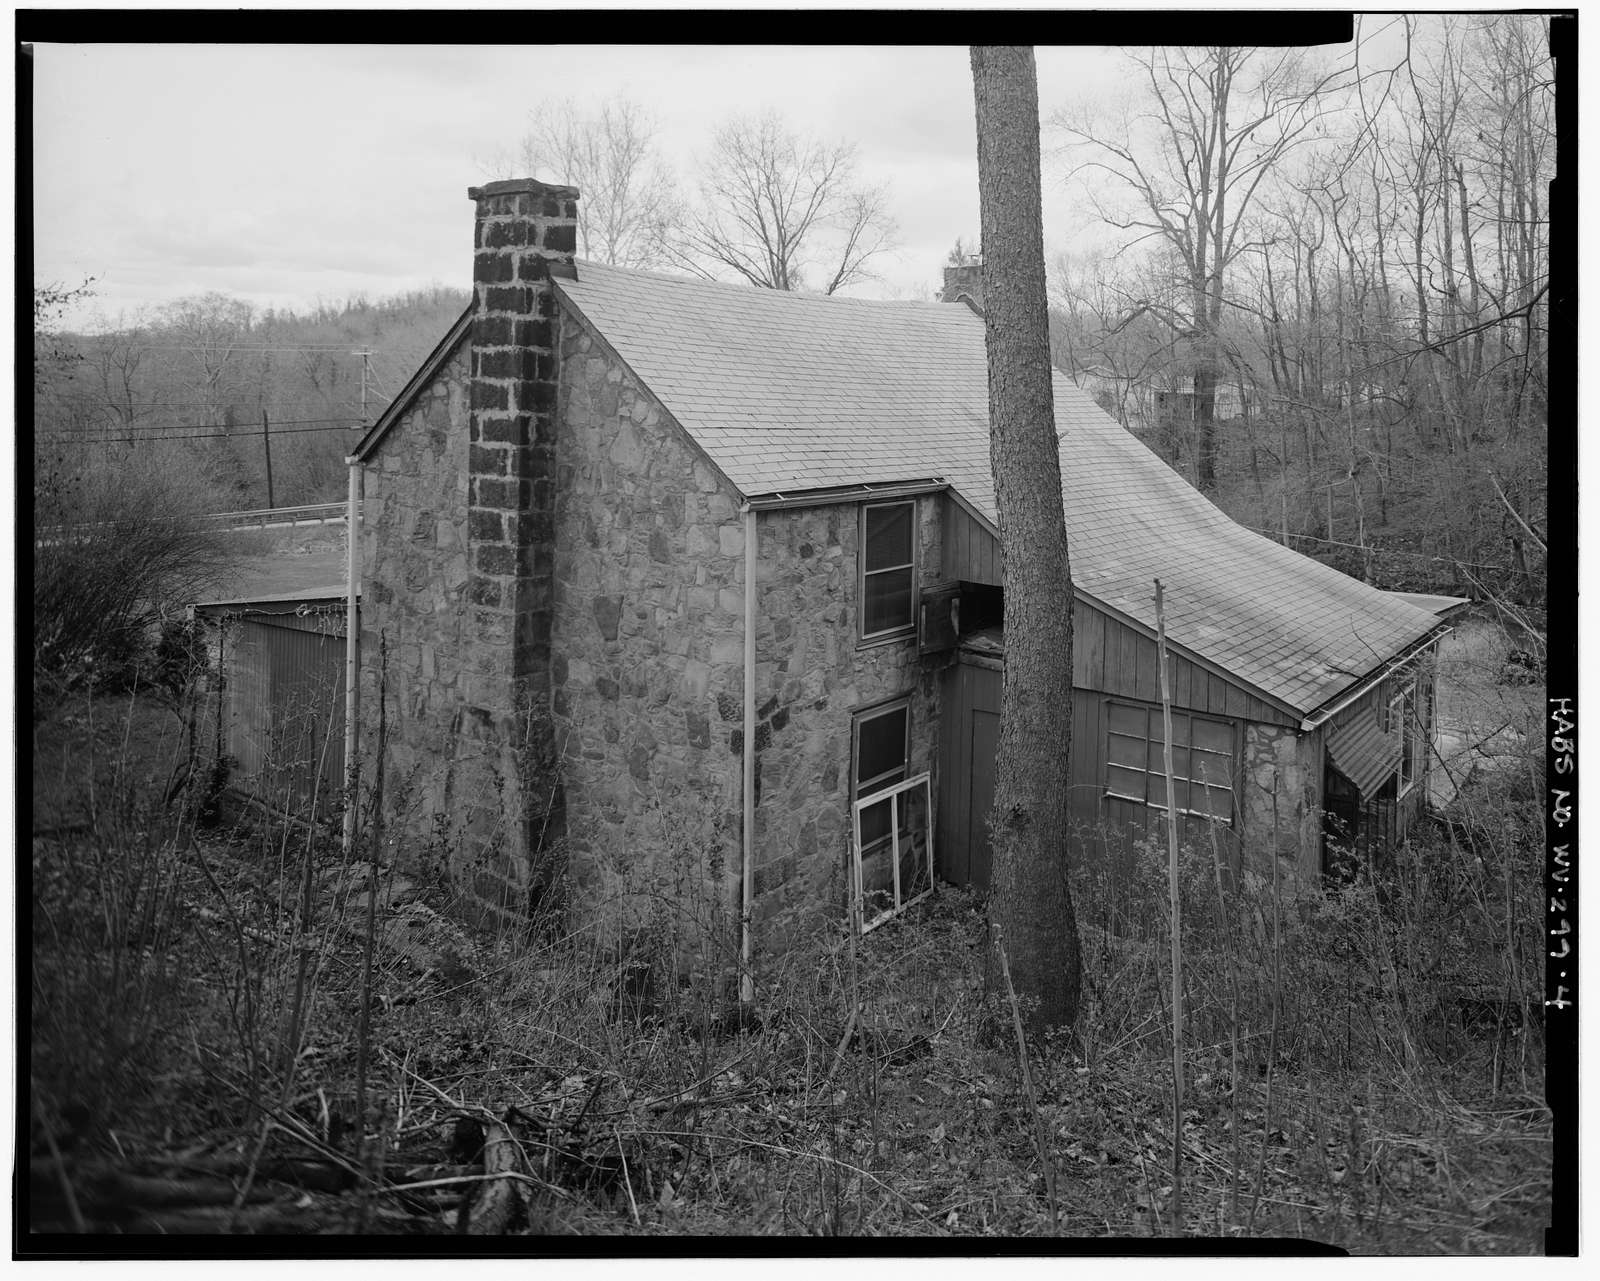 John Bly House, East side of County Road 857, just north of intersection with Quarry Run Road, Cheat Neck, Monongalia County, WV